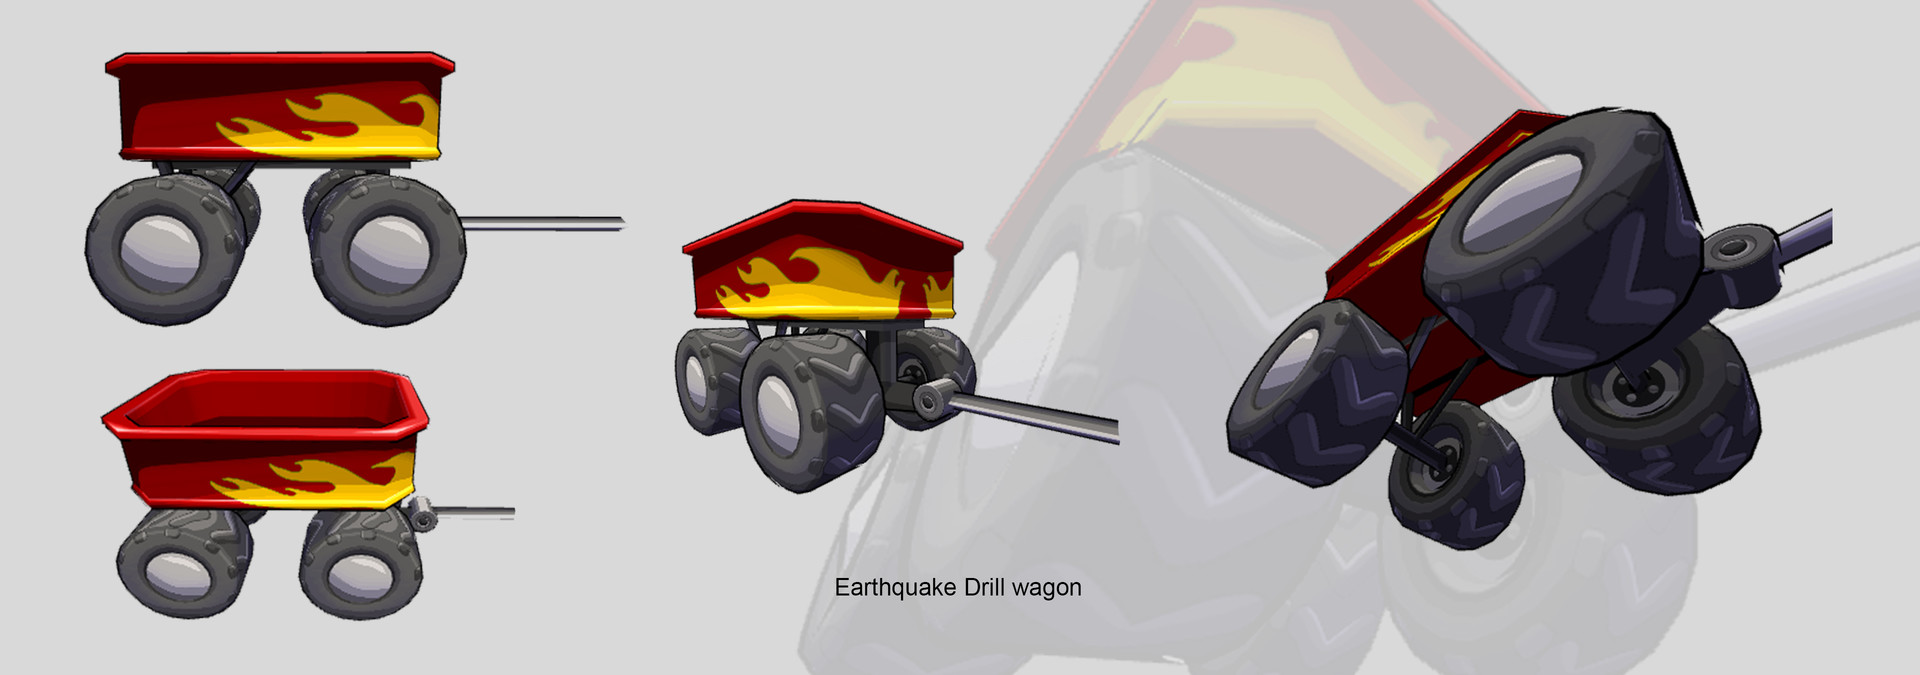 Earthquake drill wagon Model and texture